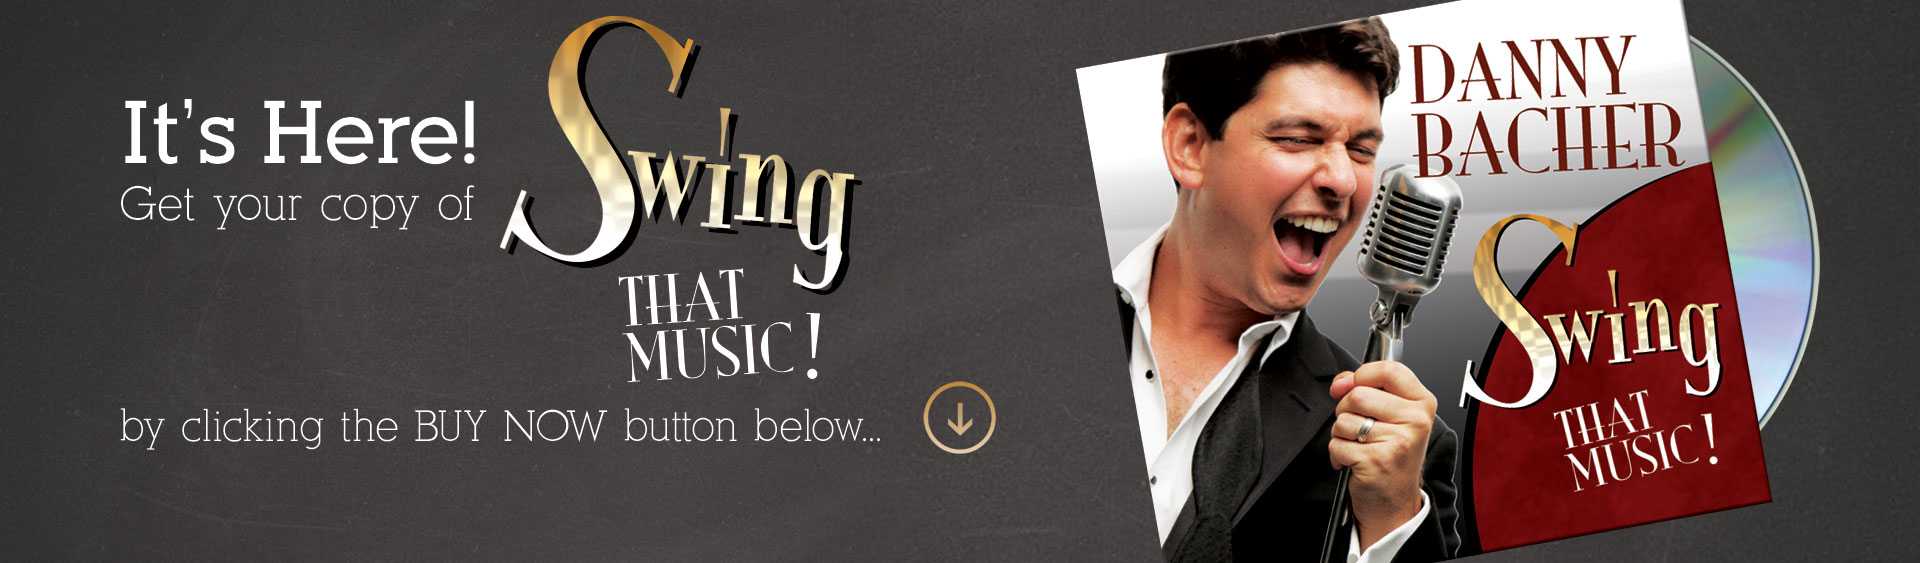 Get your copy of Swing That Music!